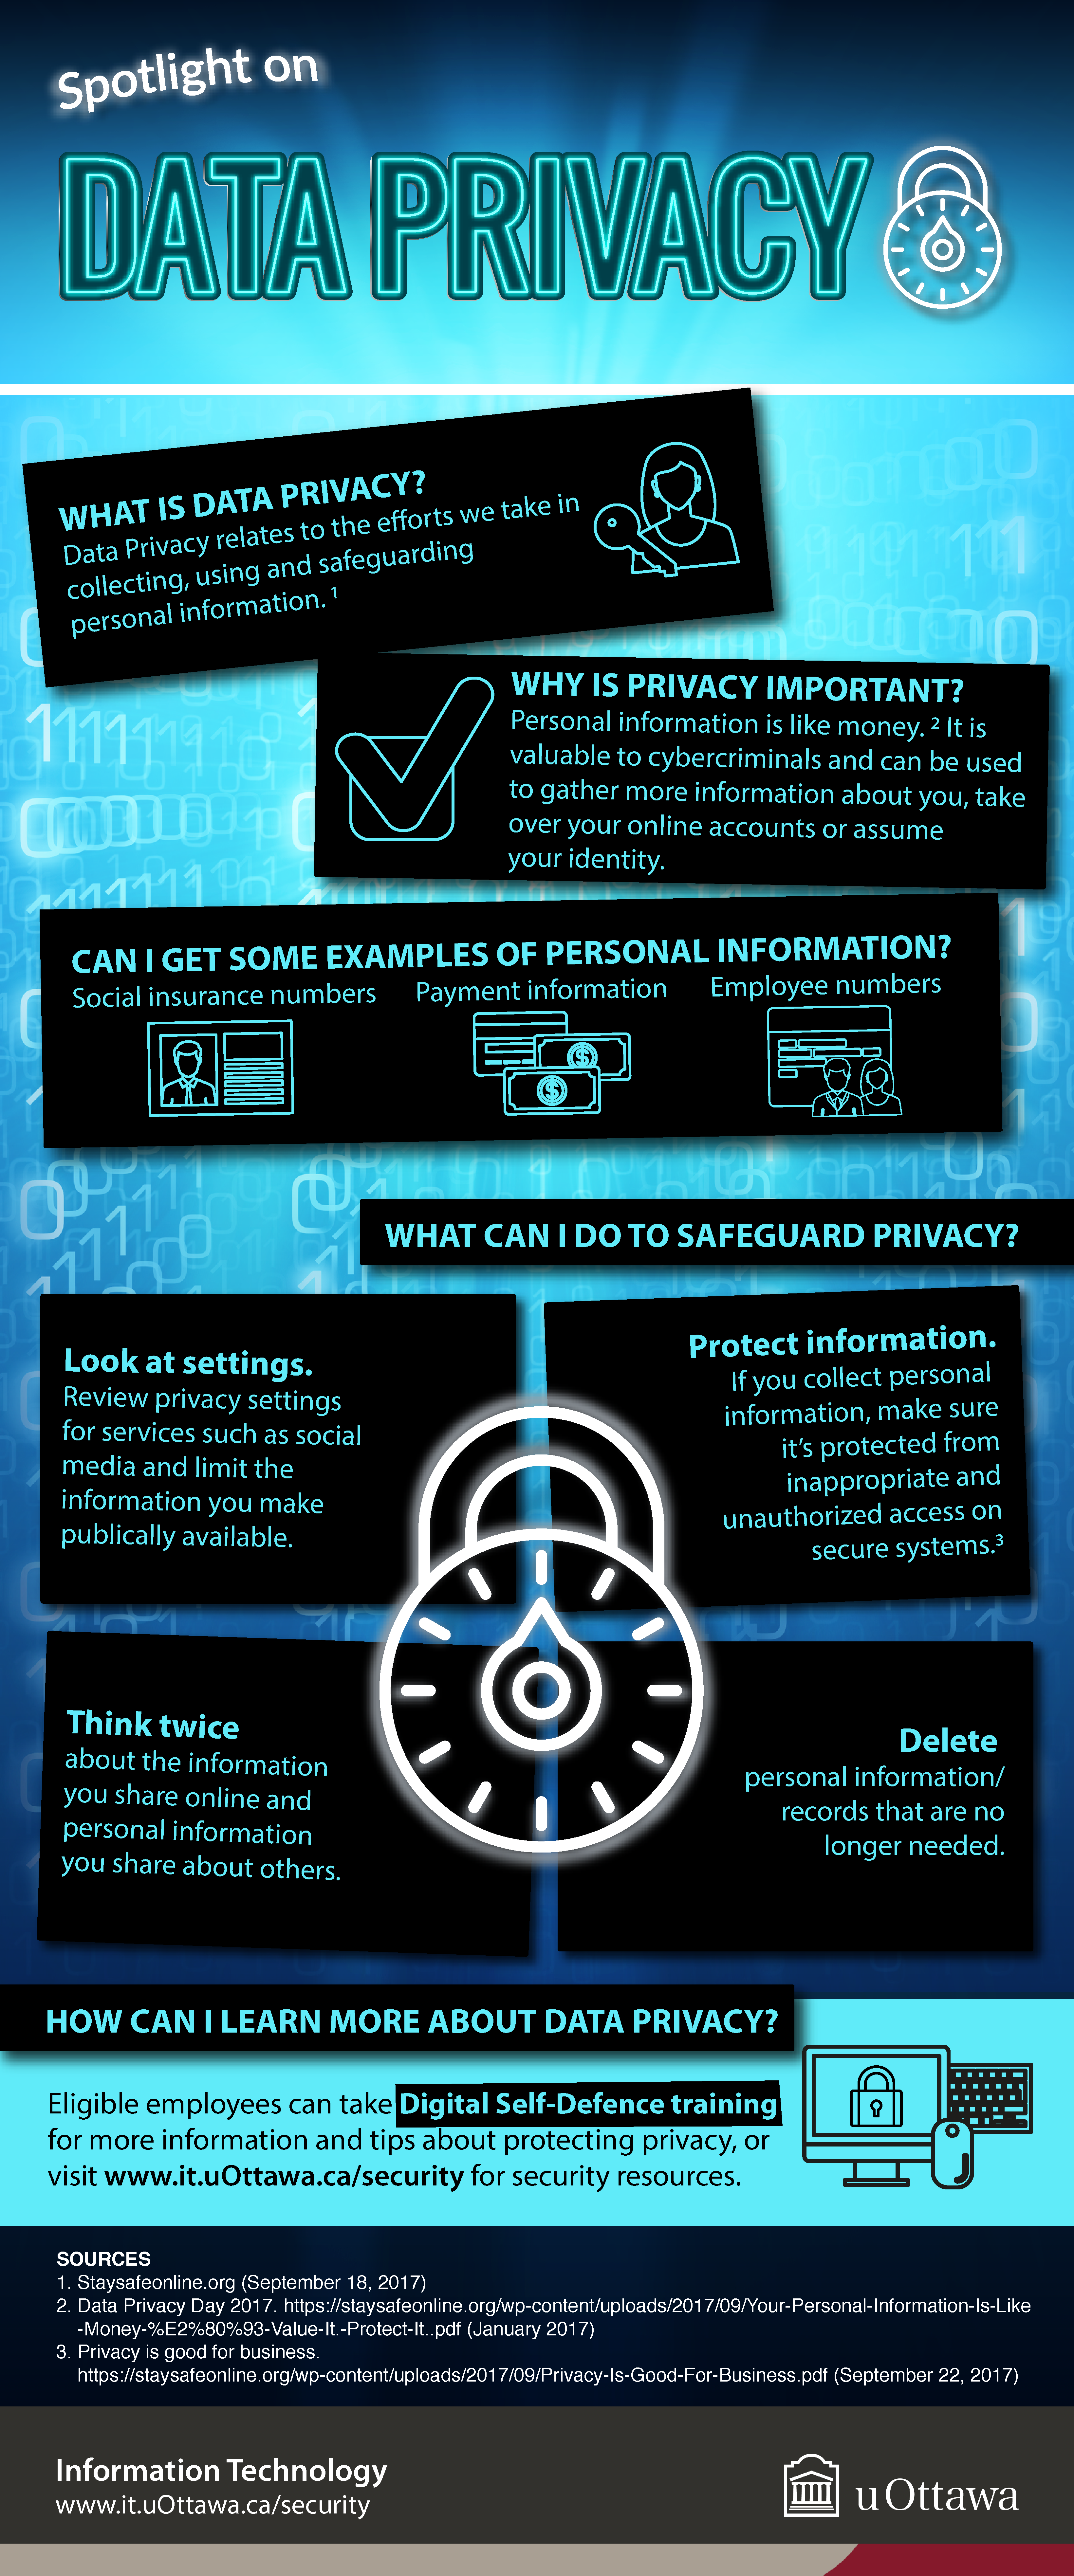 Spotlight on data privacy